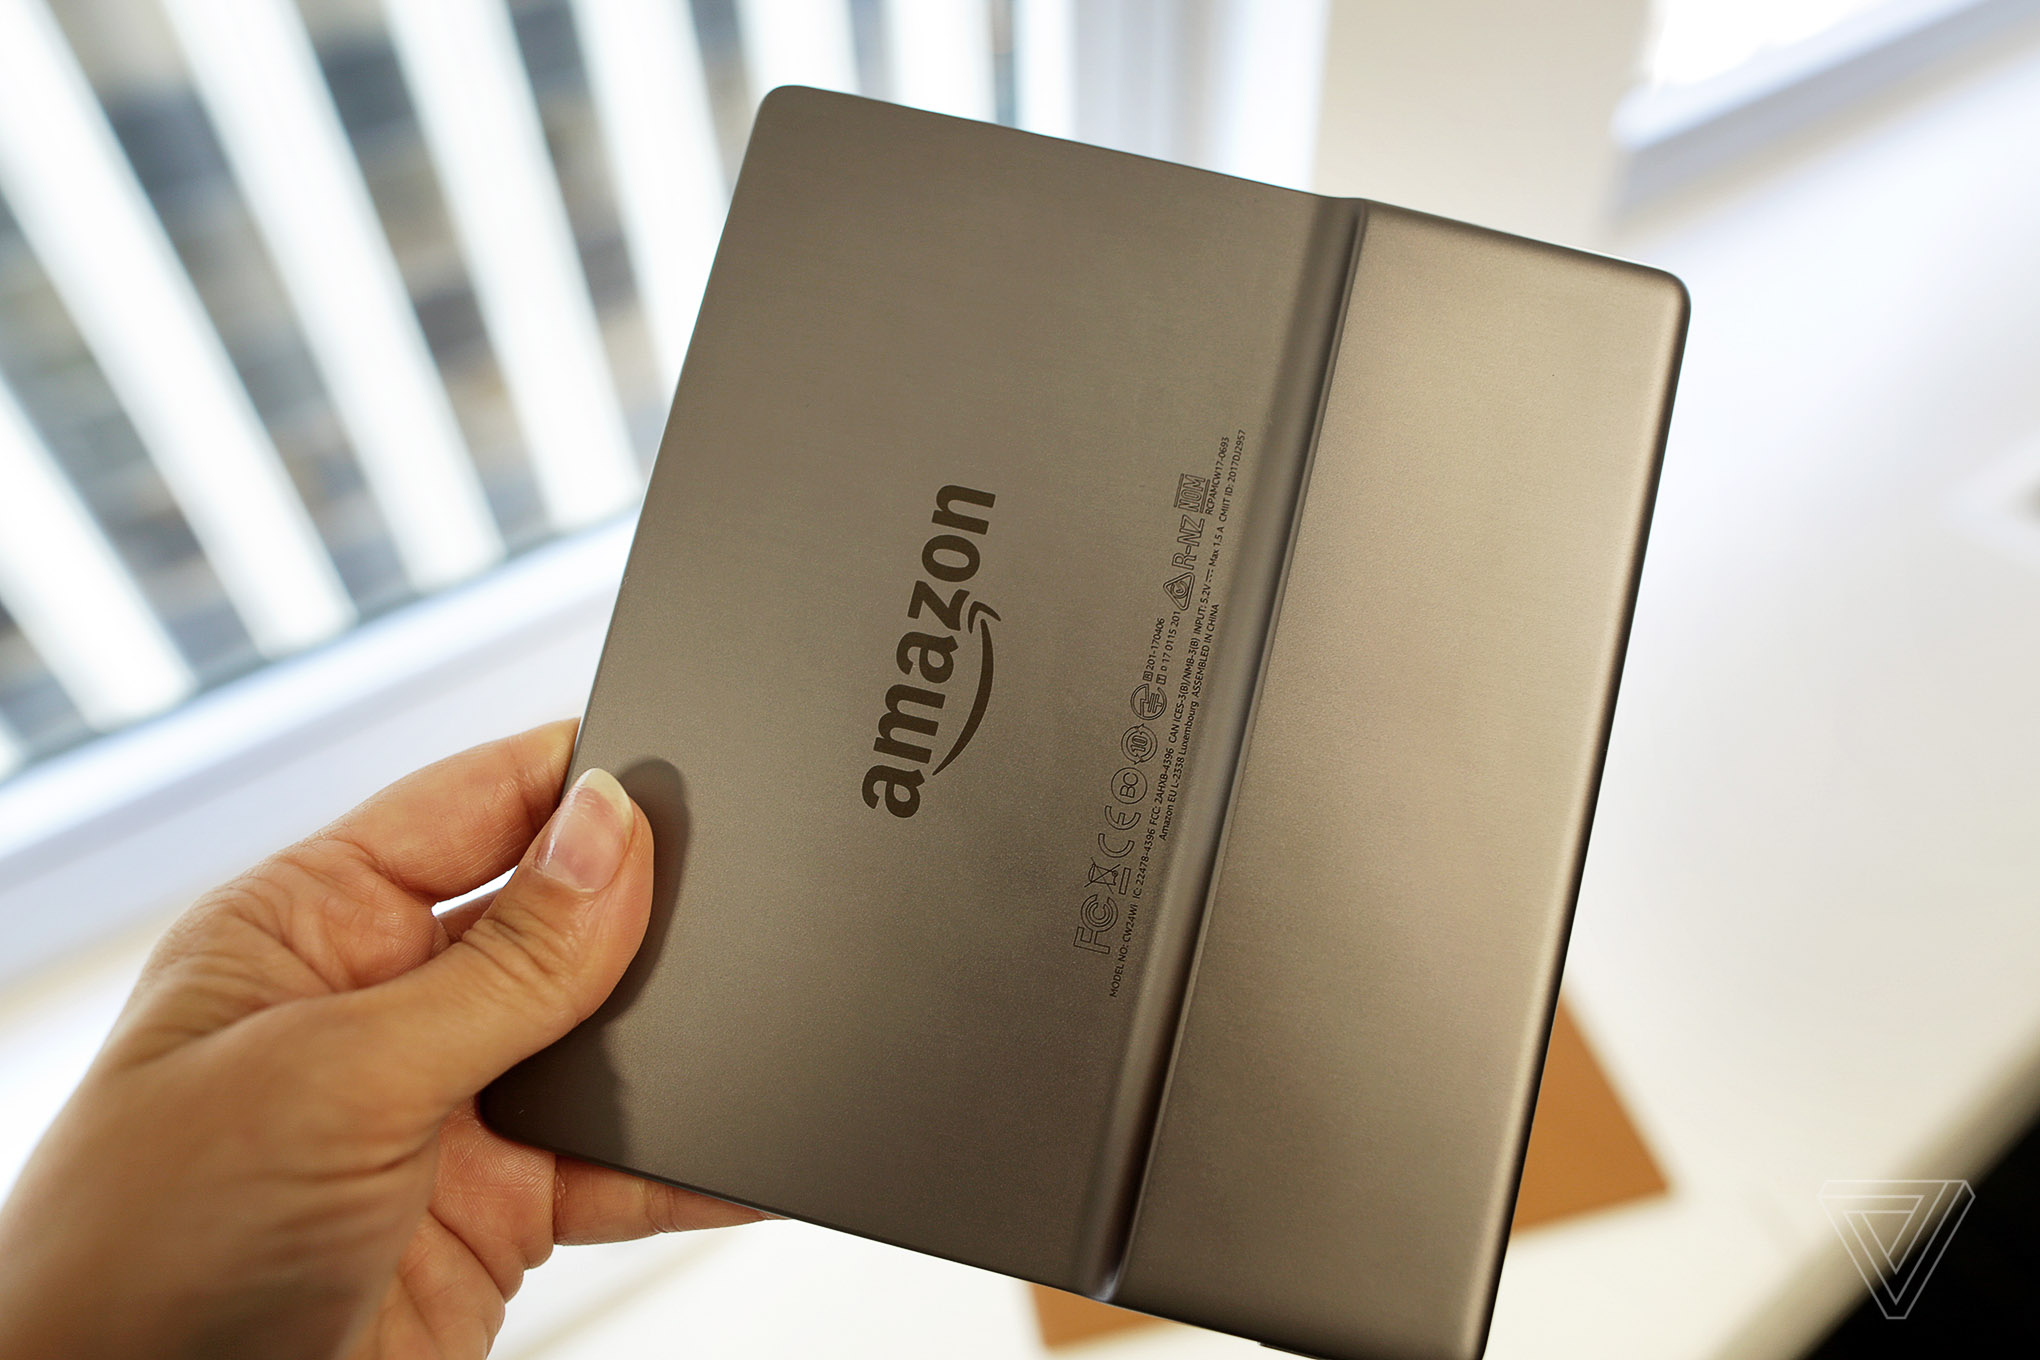 Amazon launches Kindle which can be read in the bath